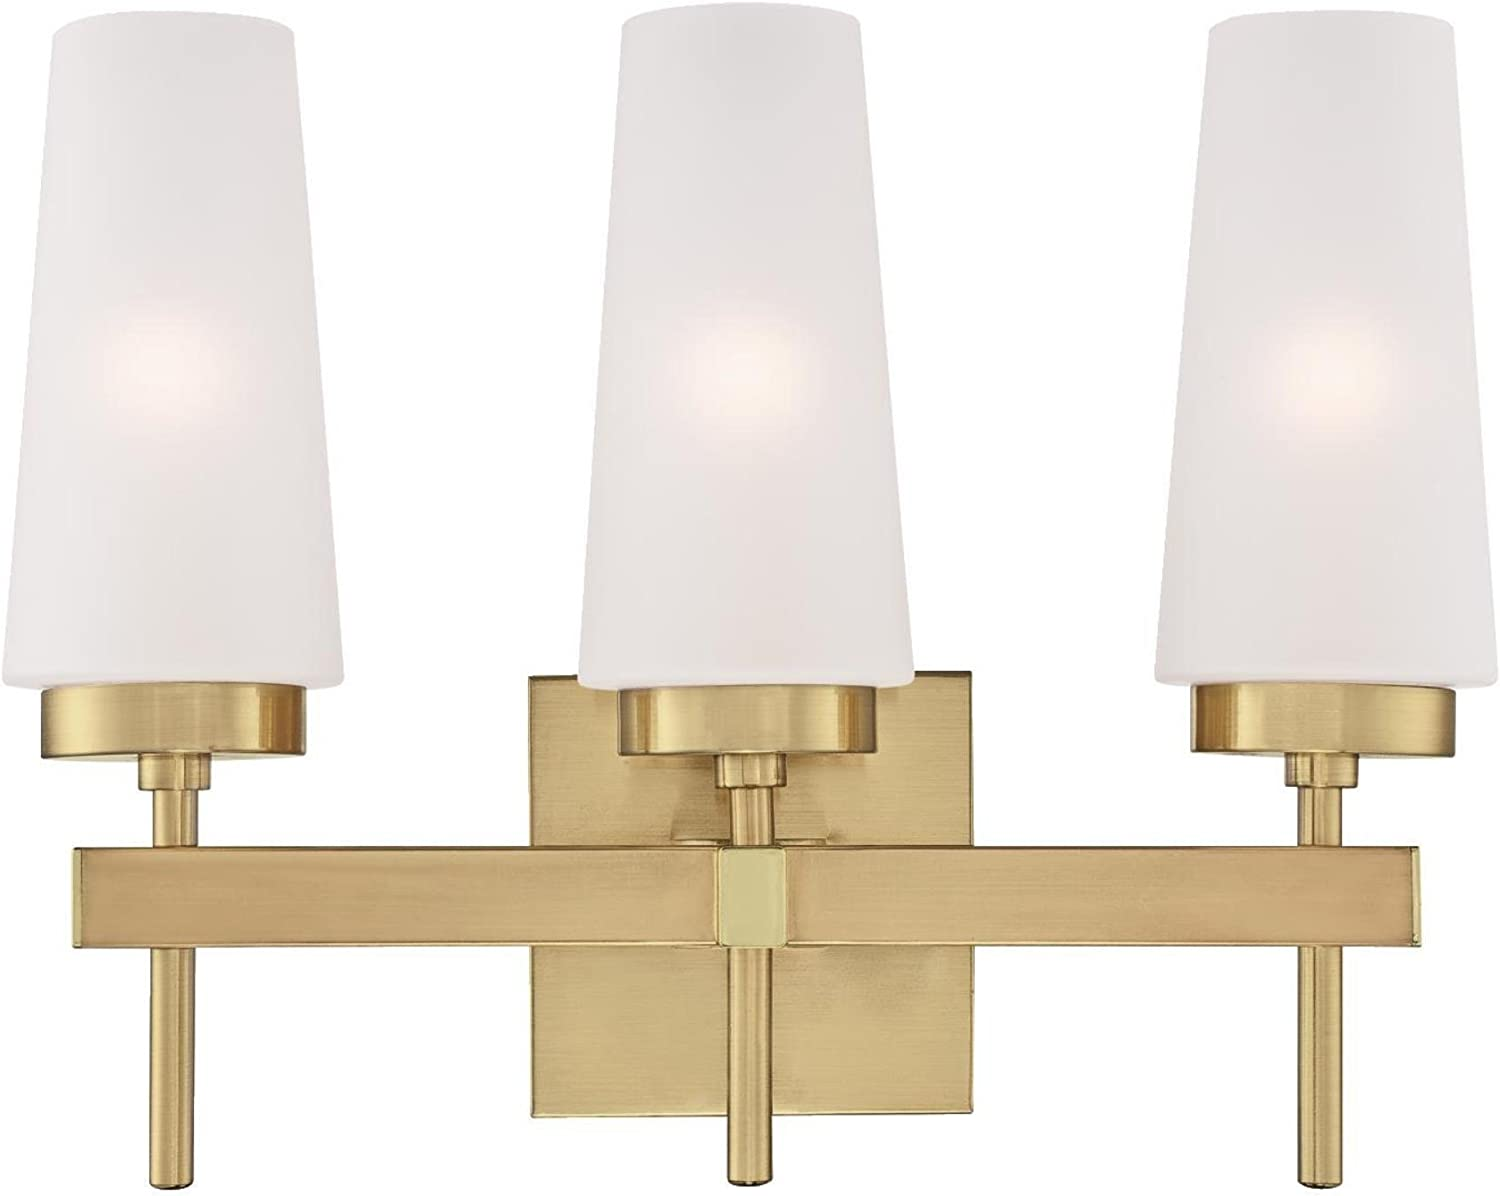 Westinghouse Lighting 6352800 Chaddsford Three-Light Indoor Wall Fixture, Champagne Brass